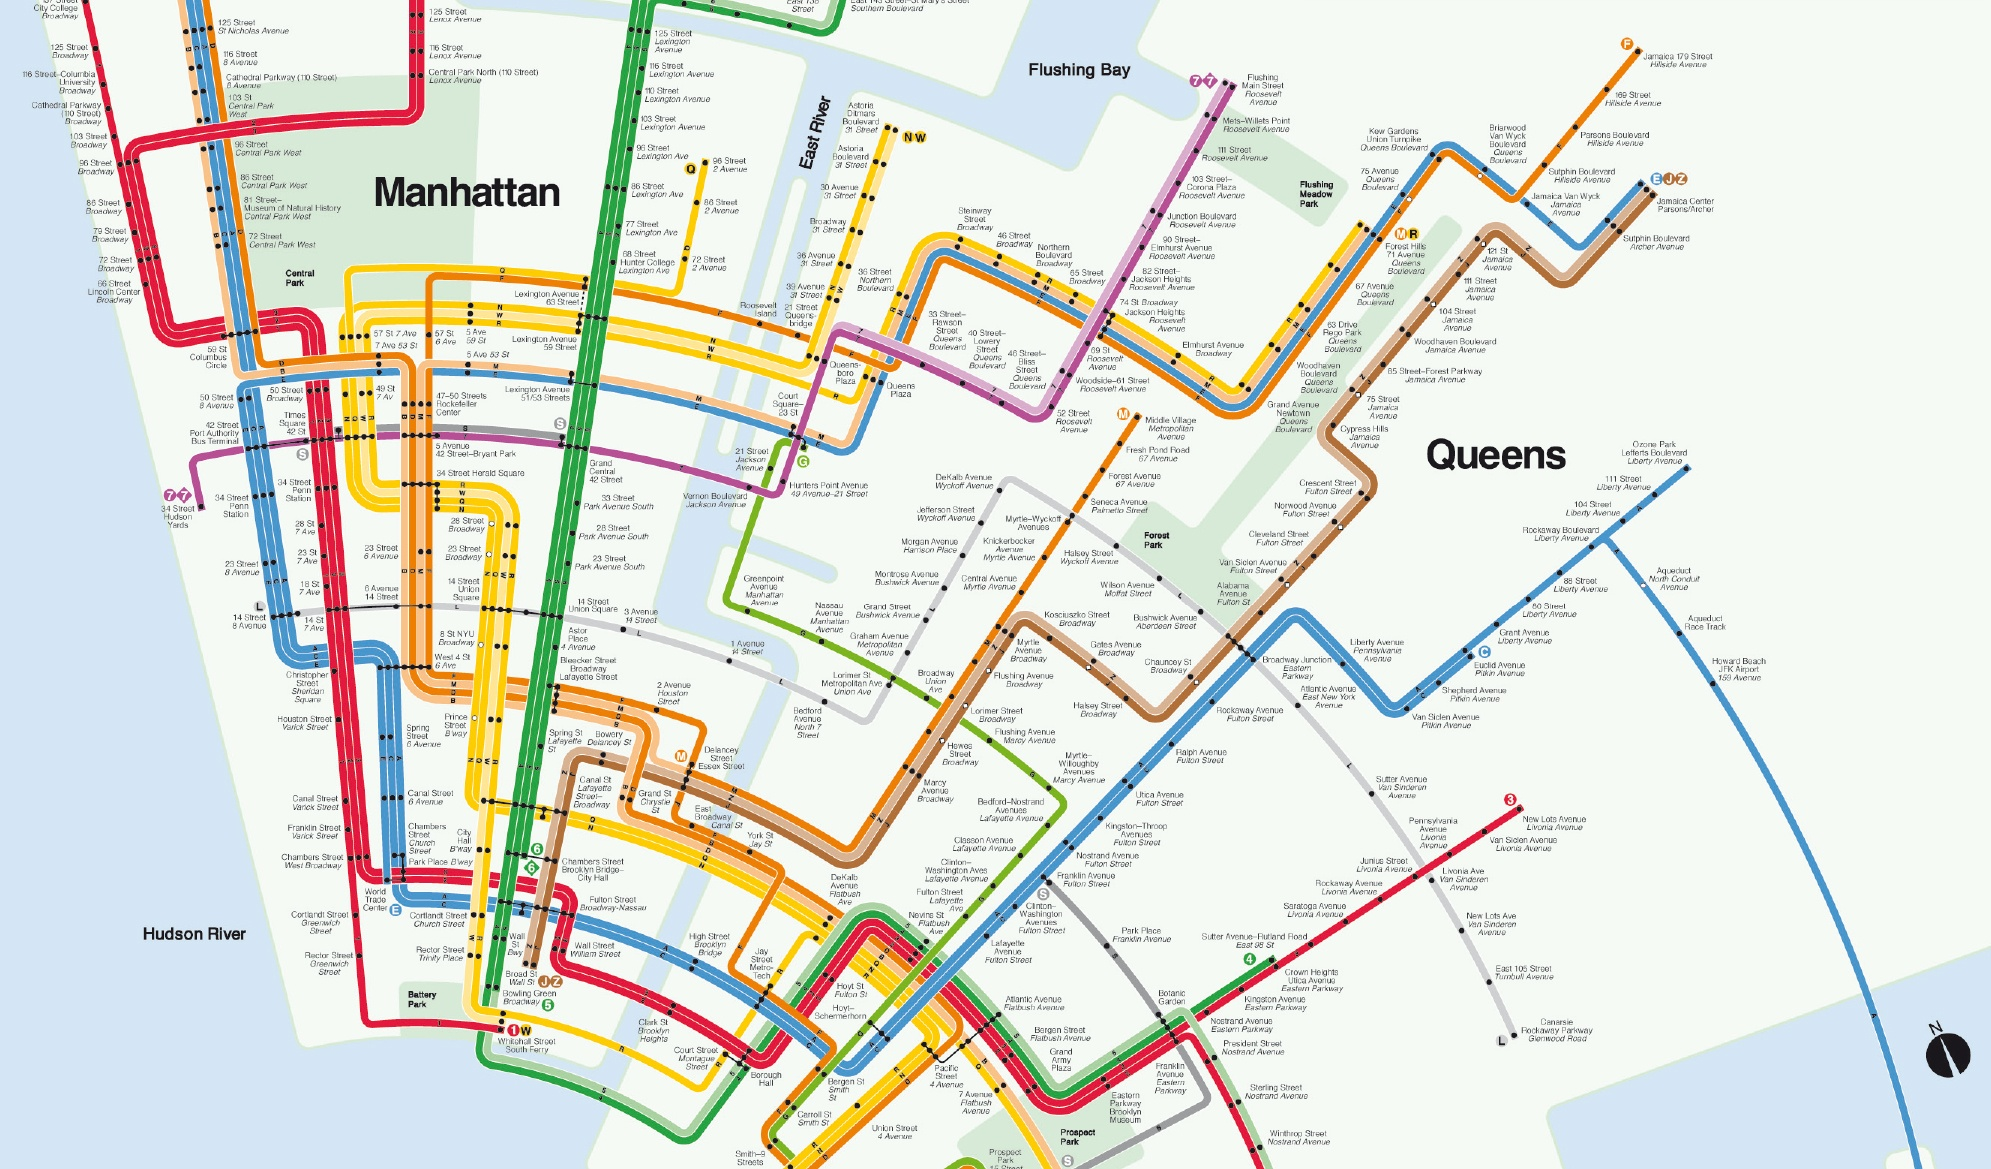 Subway Maps Of Nyc.Artist Uses The Classic Vignelli Design To Reimagine The Nyc Subway Map In Concentric Circles 6sqft